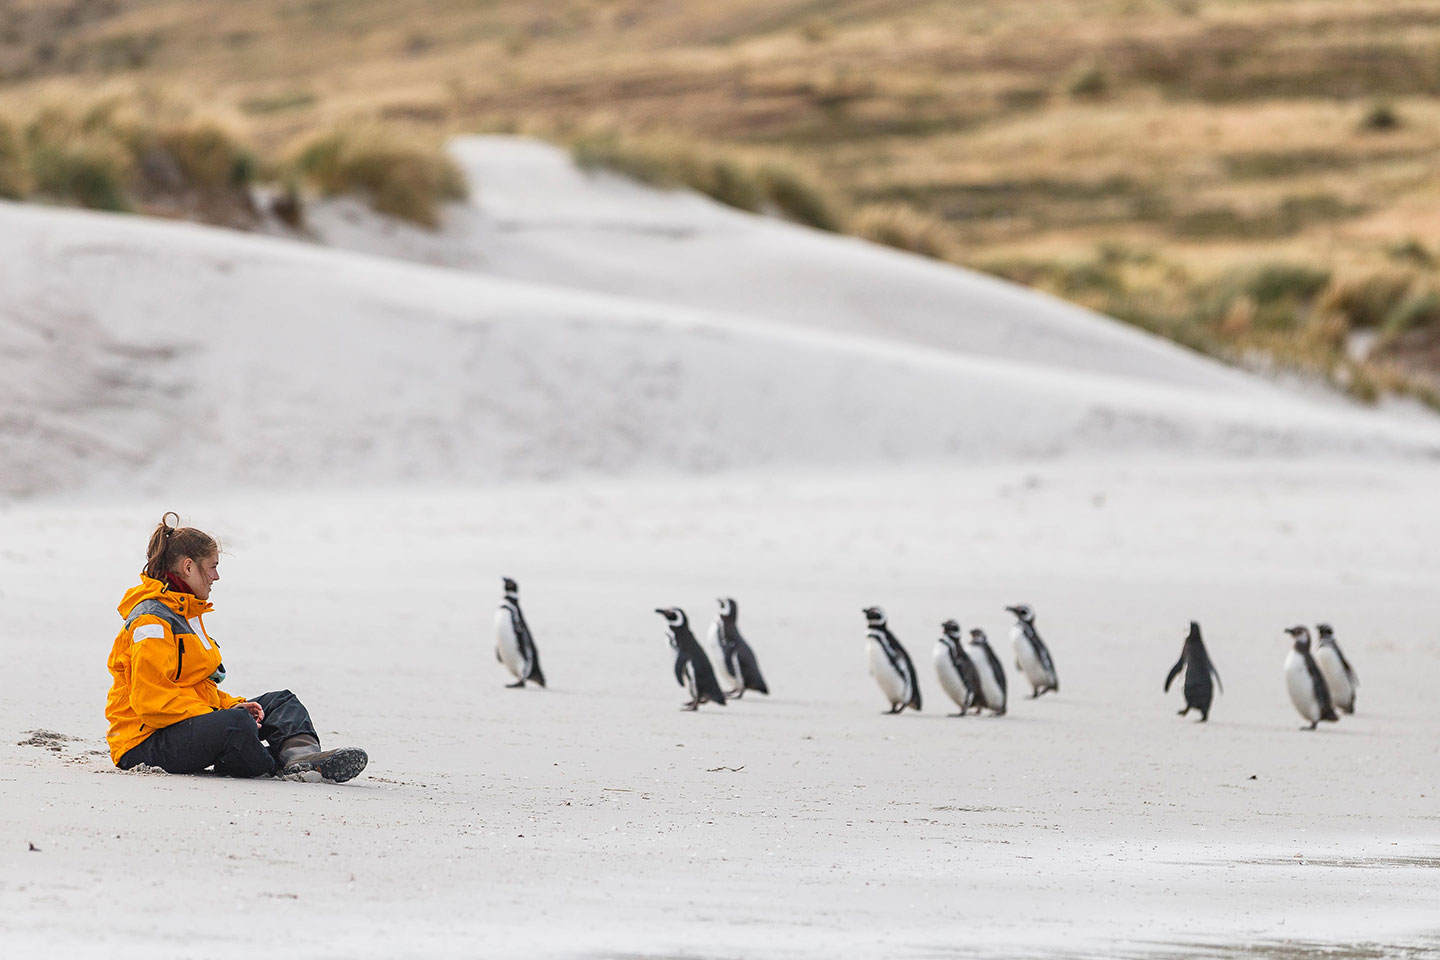 History and wildlife are the drawing cards of the Falkland Islands.